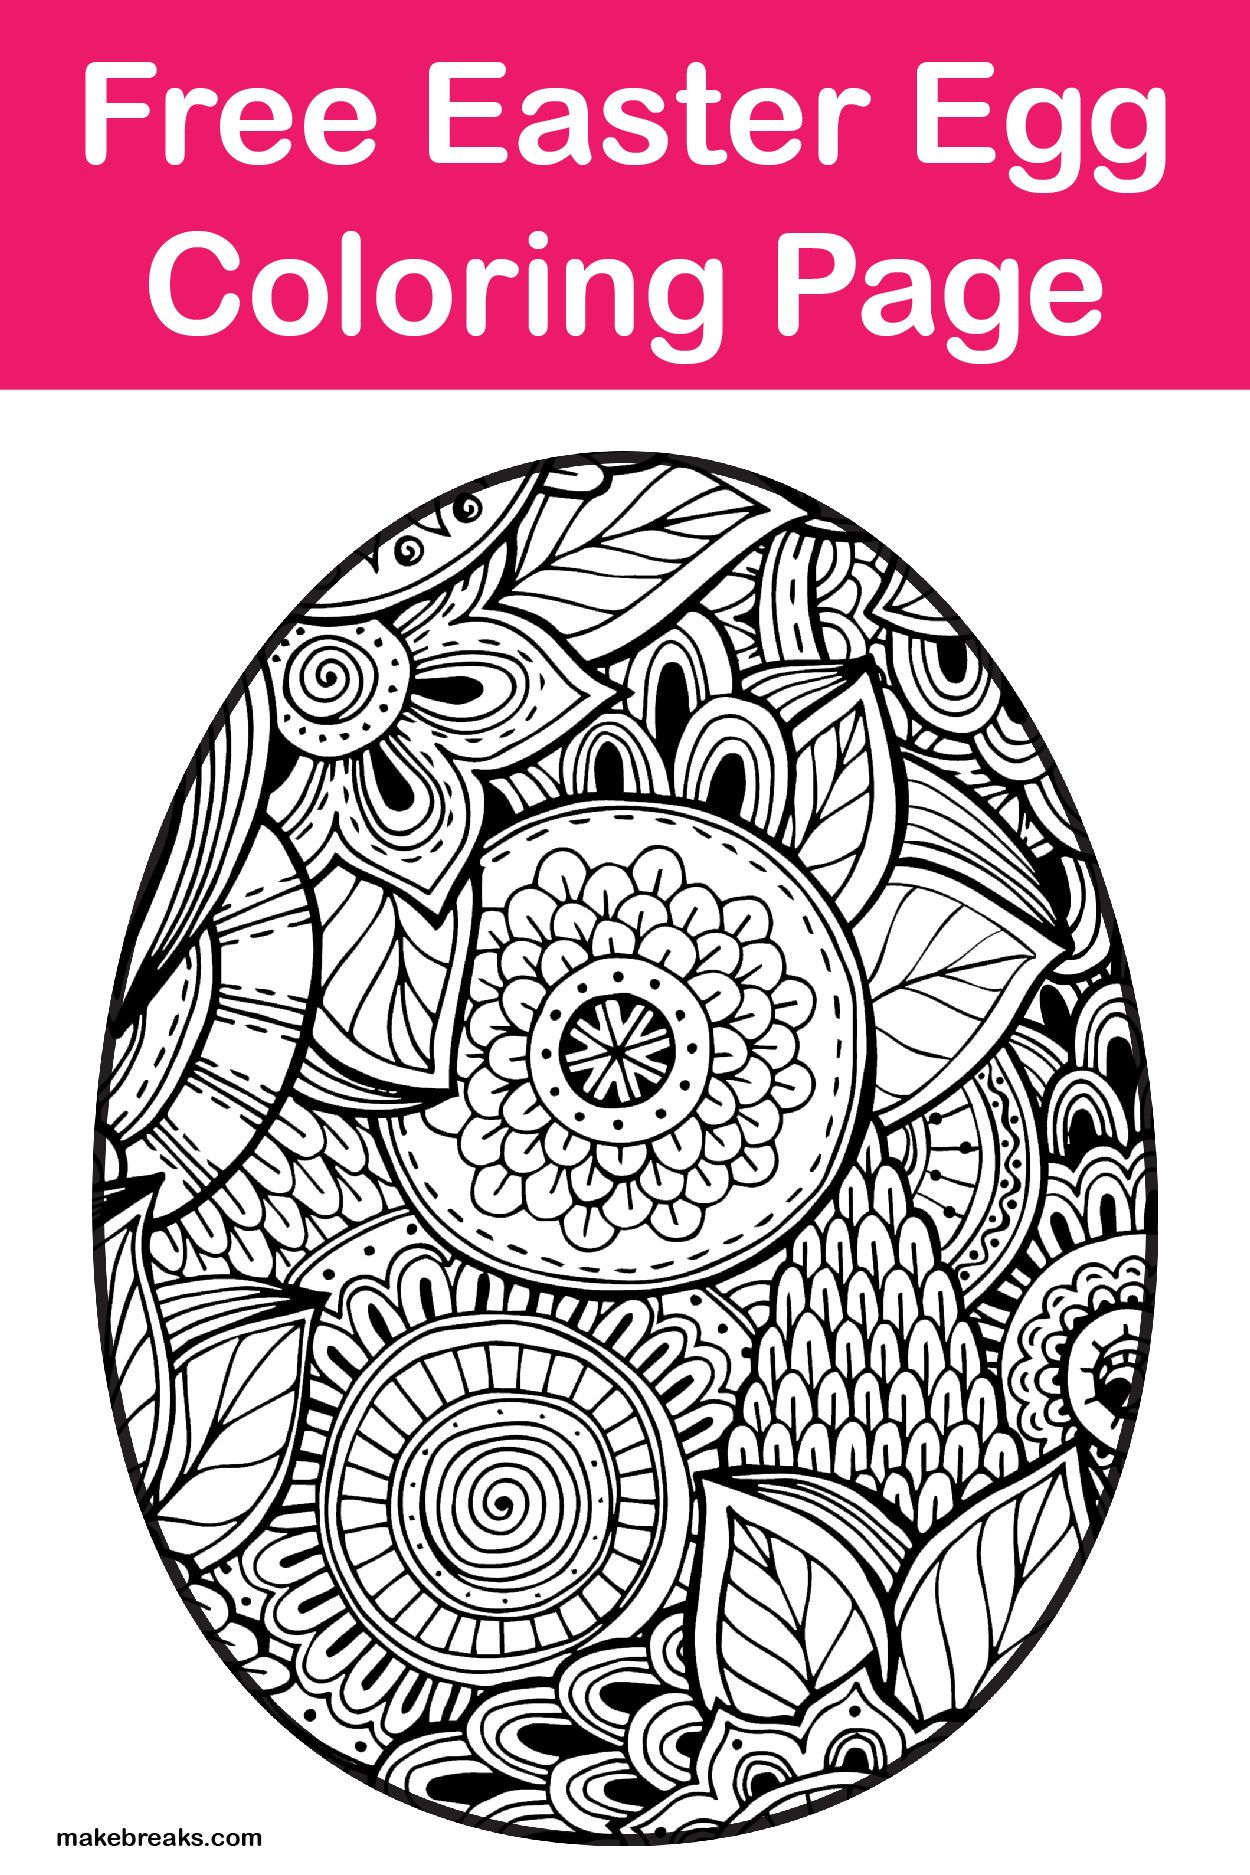 Free Easter Egg Coloring Page Make Breaks Easter Egg Coloring Pages Egg Coloring Page Coloring Eggs